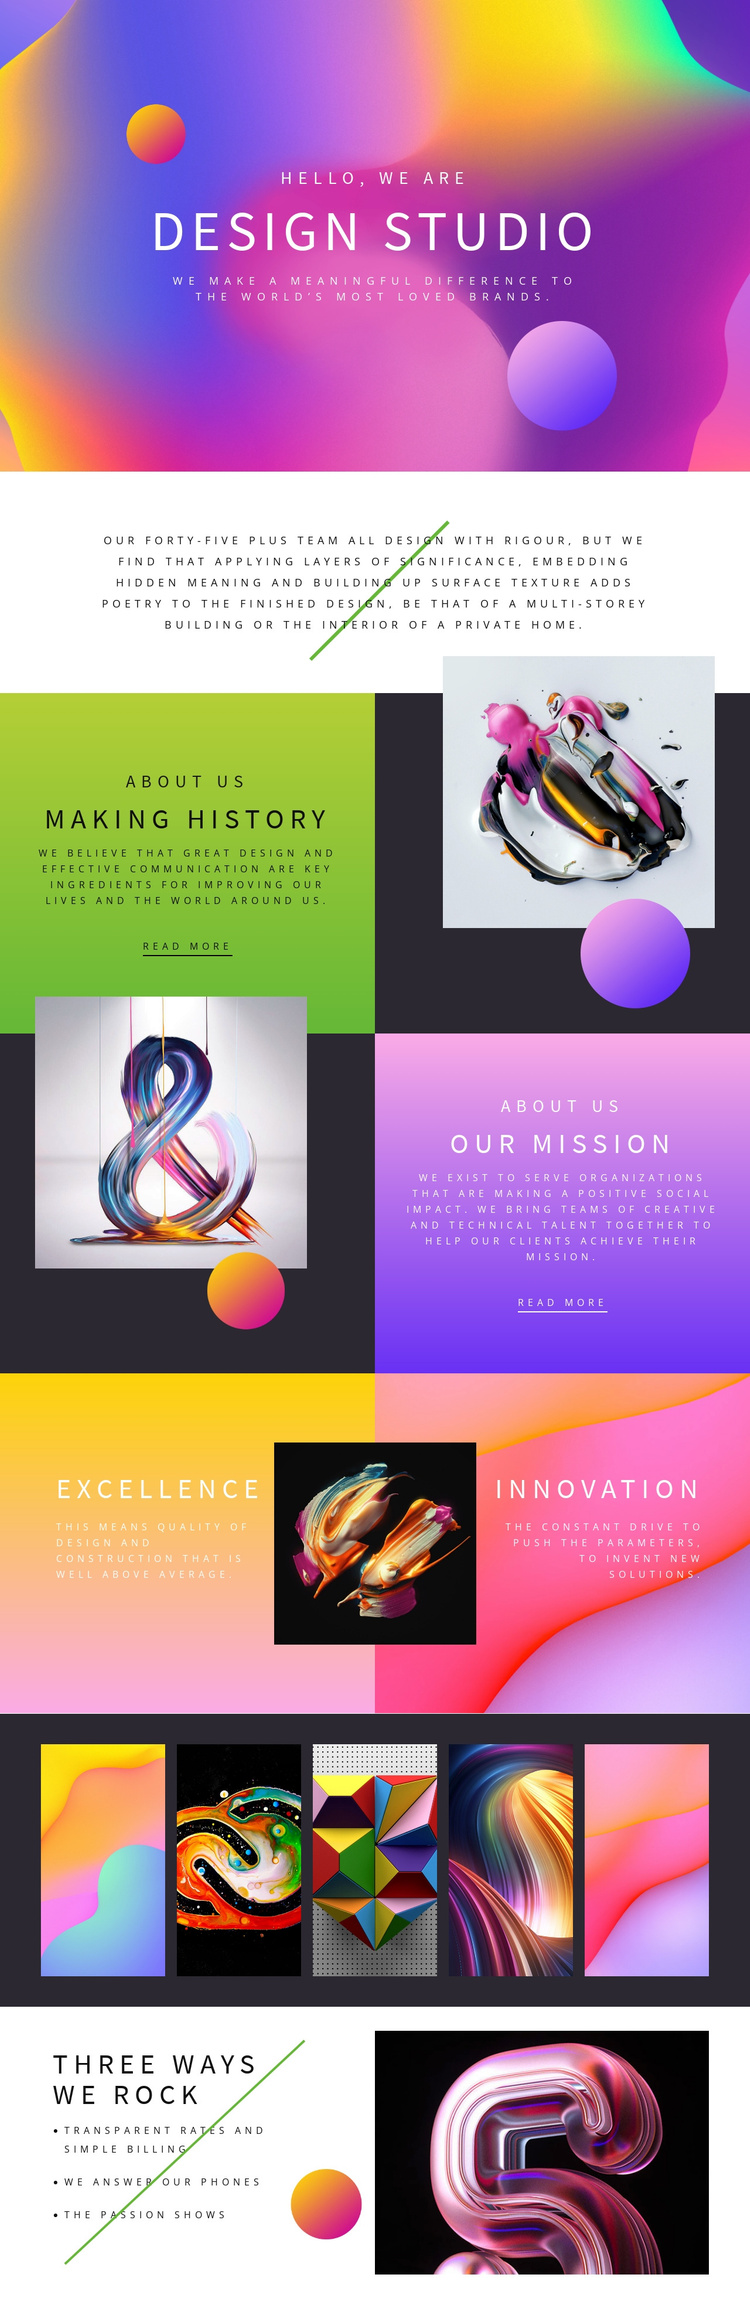 Progressive design art Joomla Template